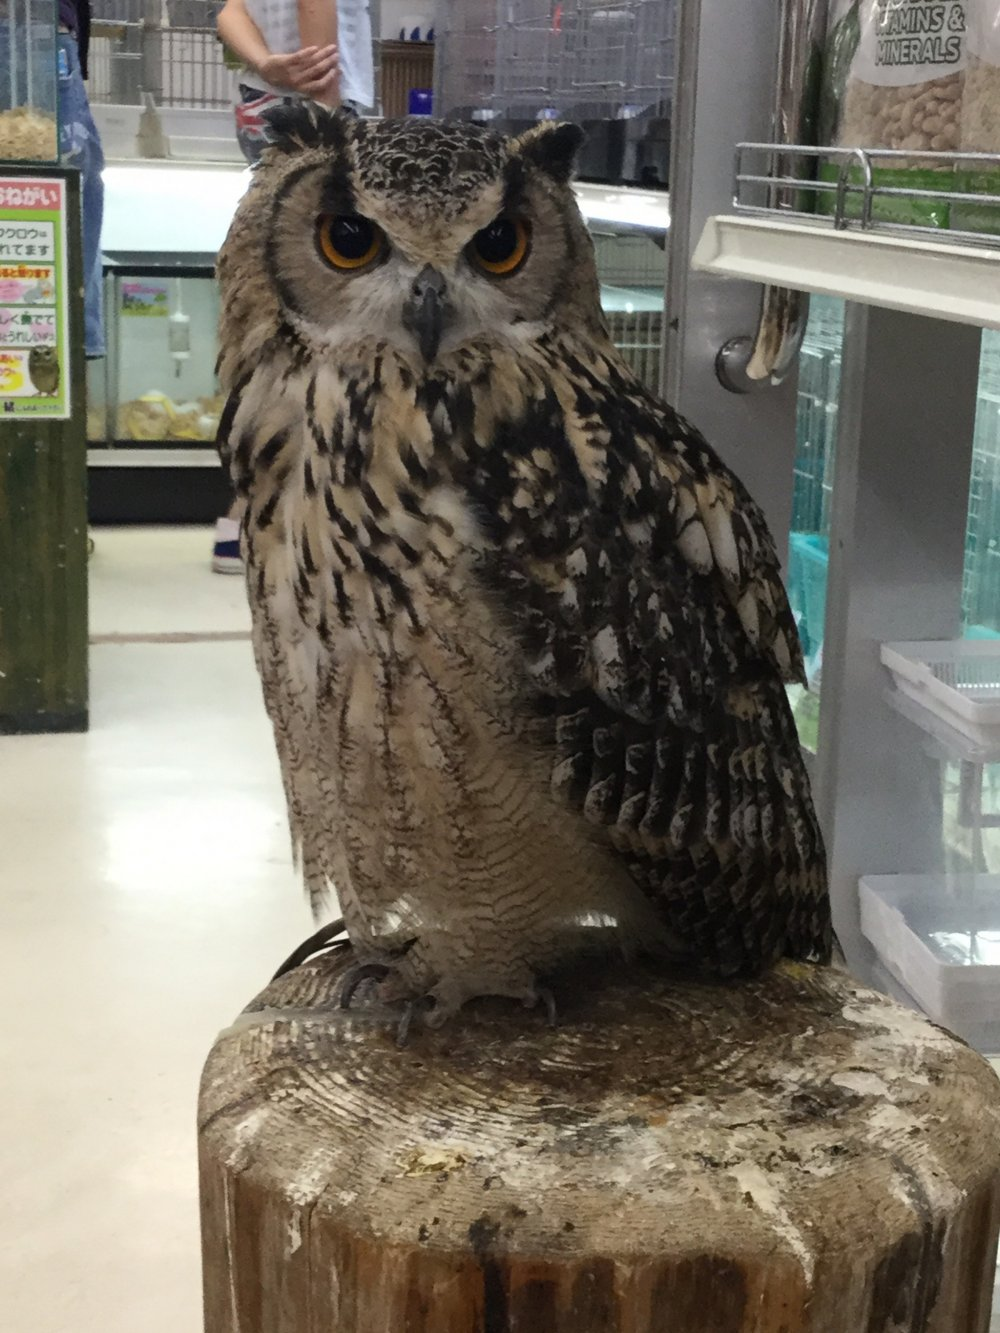 A real live owl for sale